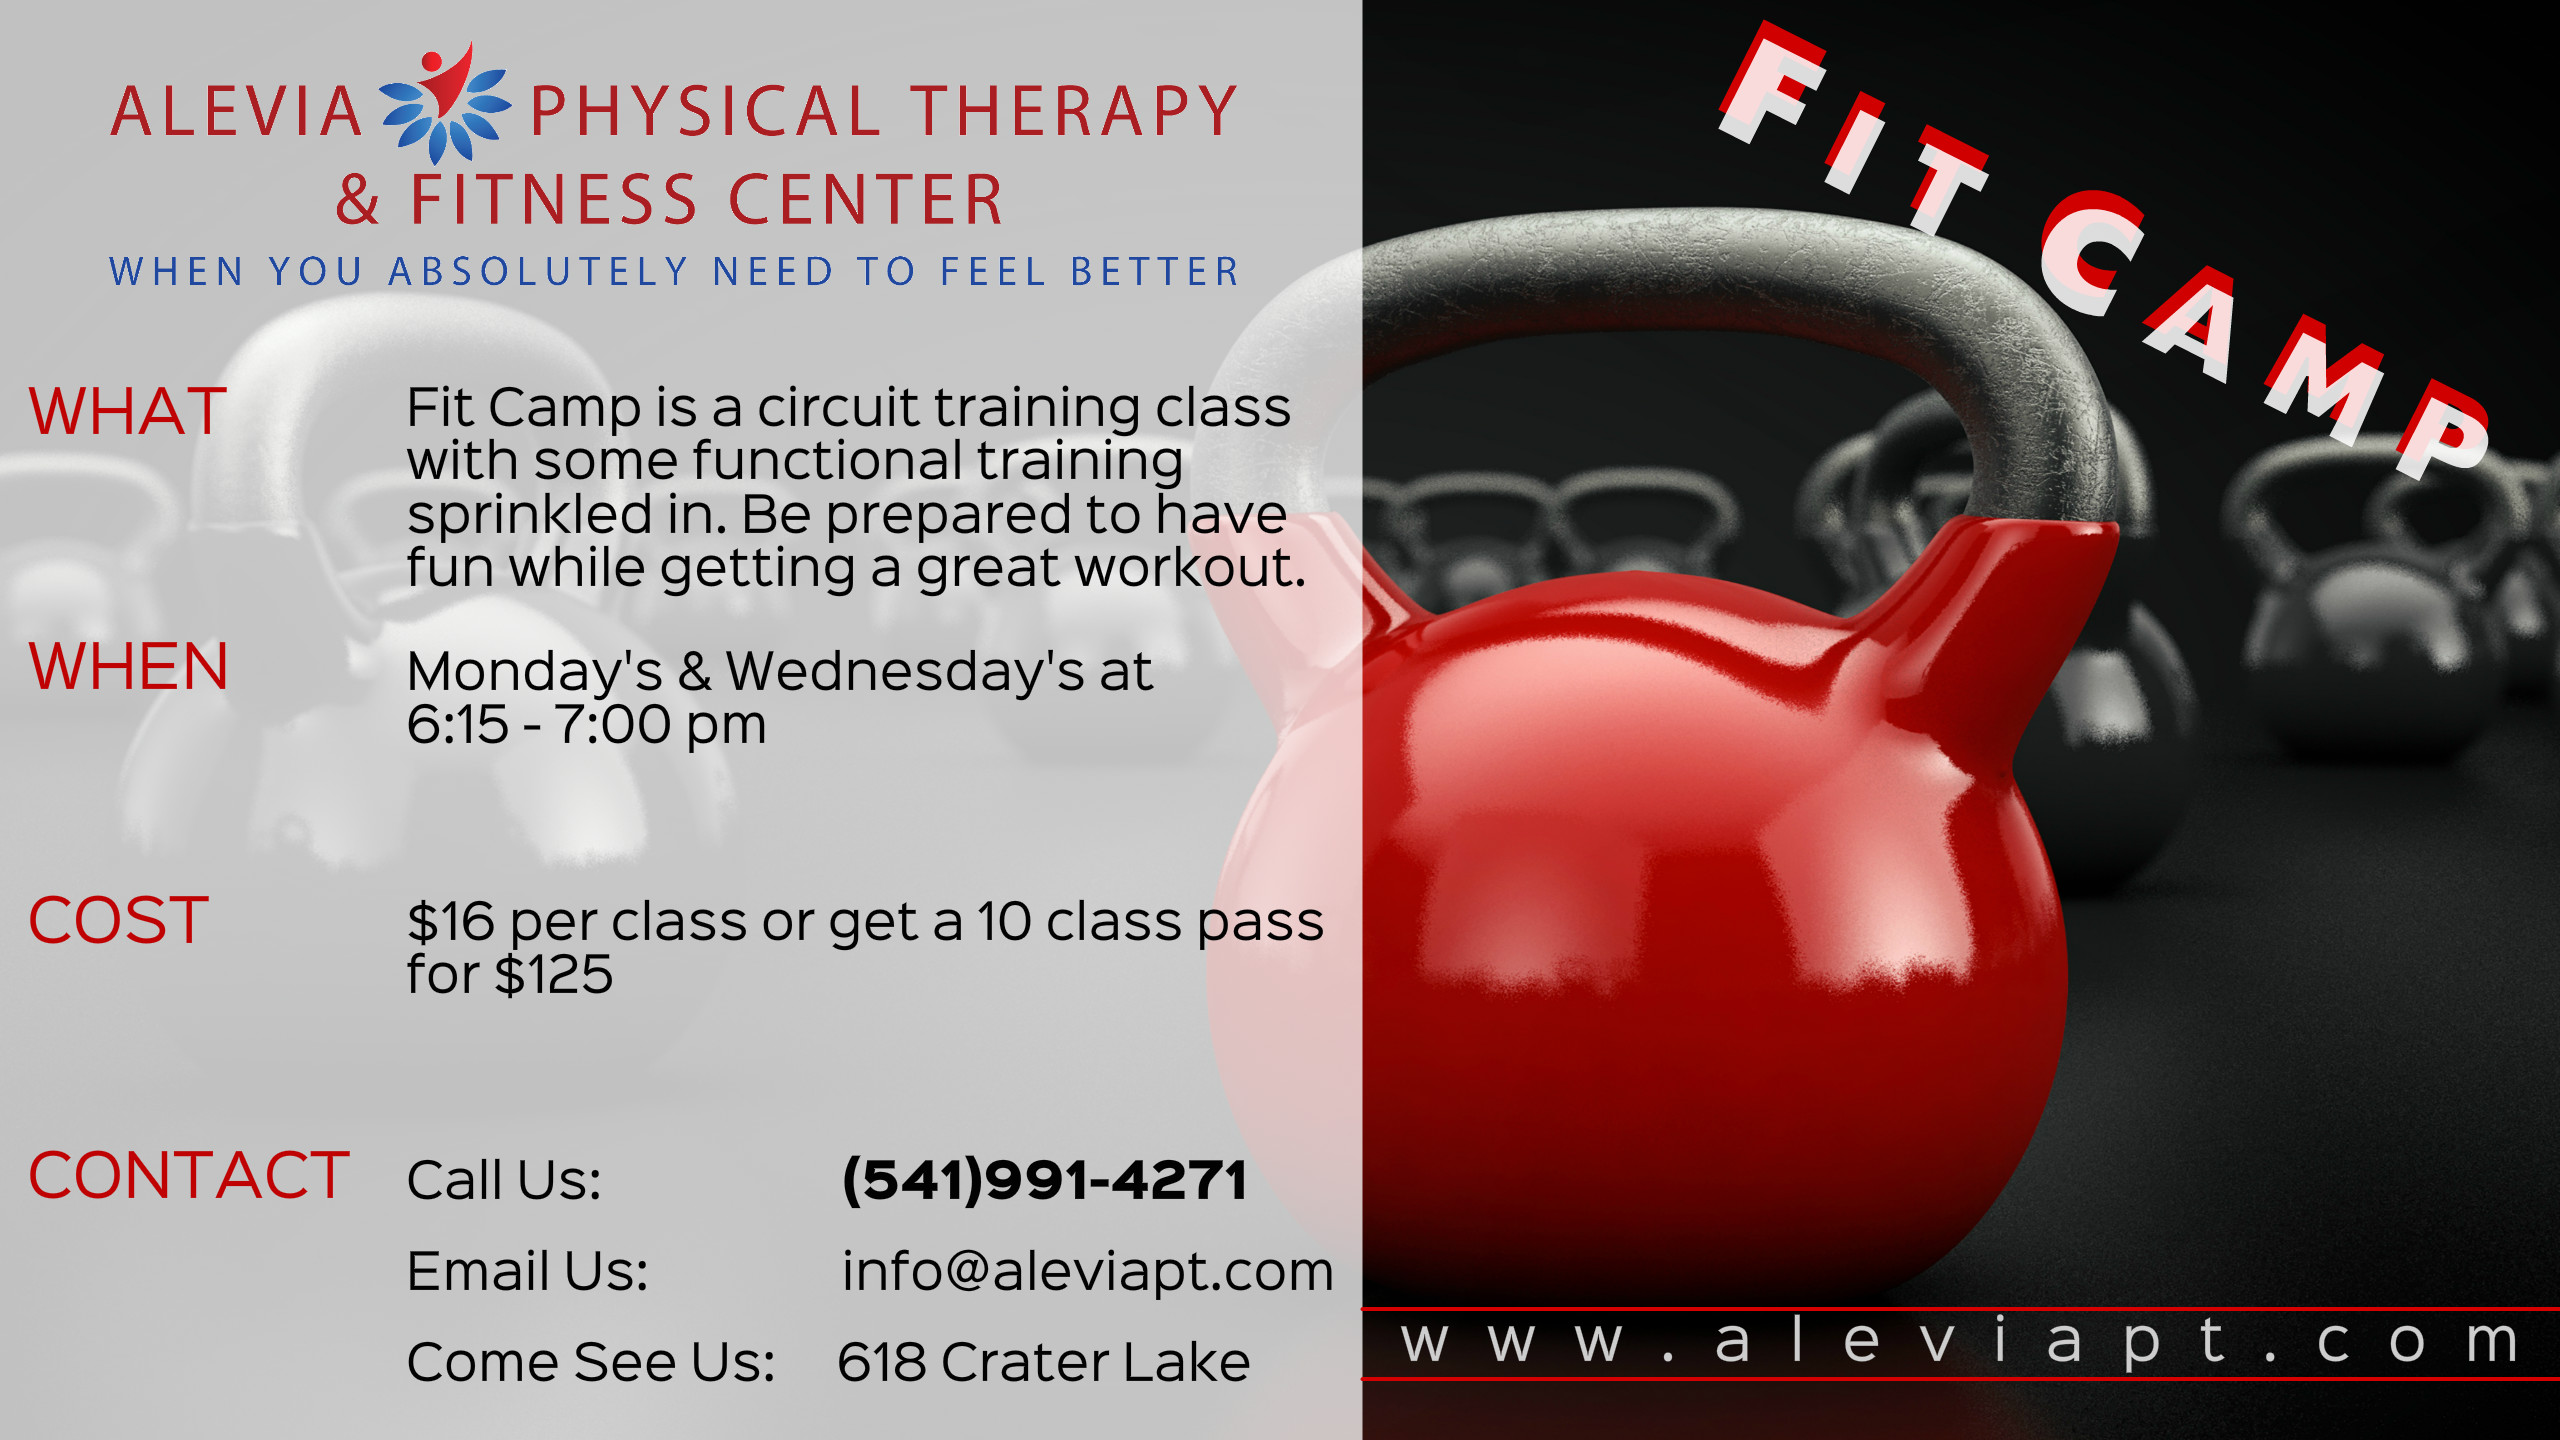 Personal Trainer  com | Medford Oregon Gym Alevia Physical Therapy